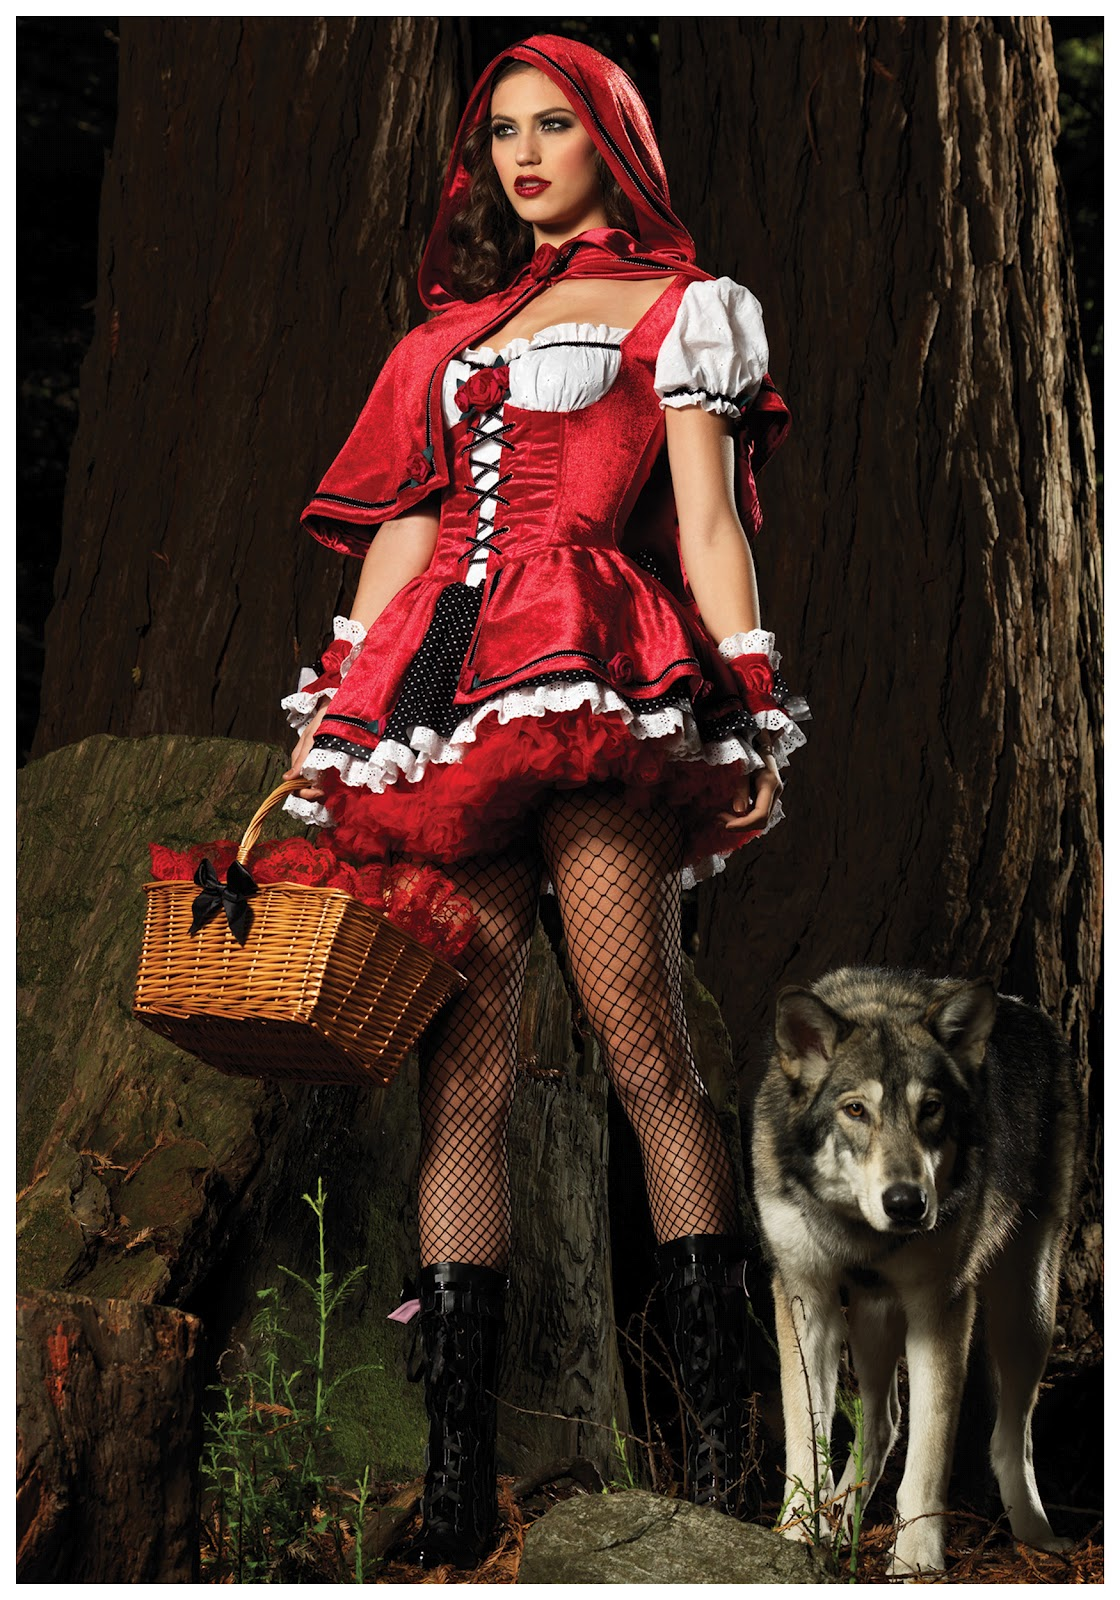 Red Riding Hood Sexy 48